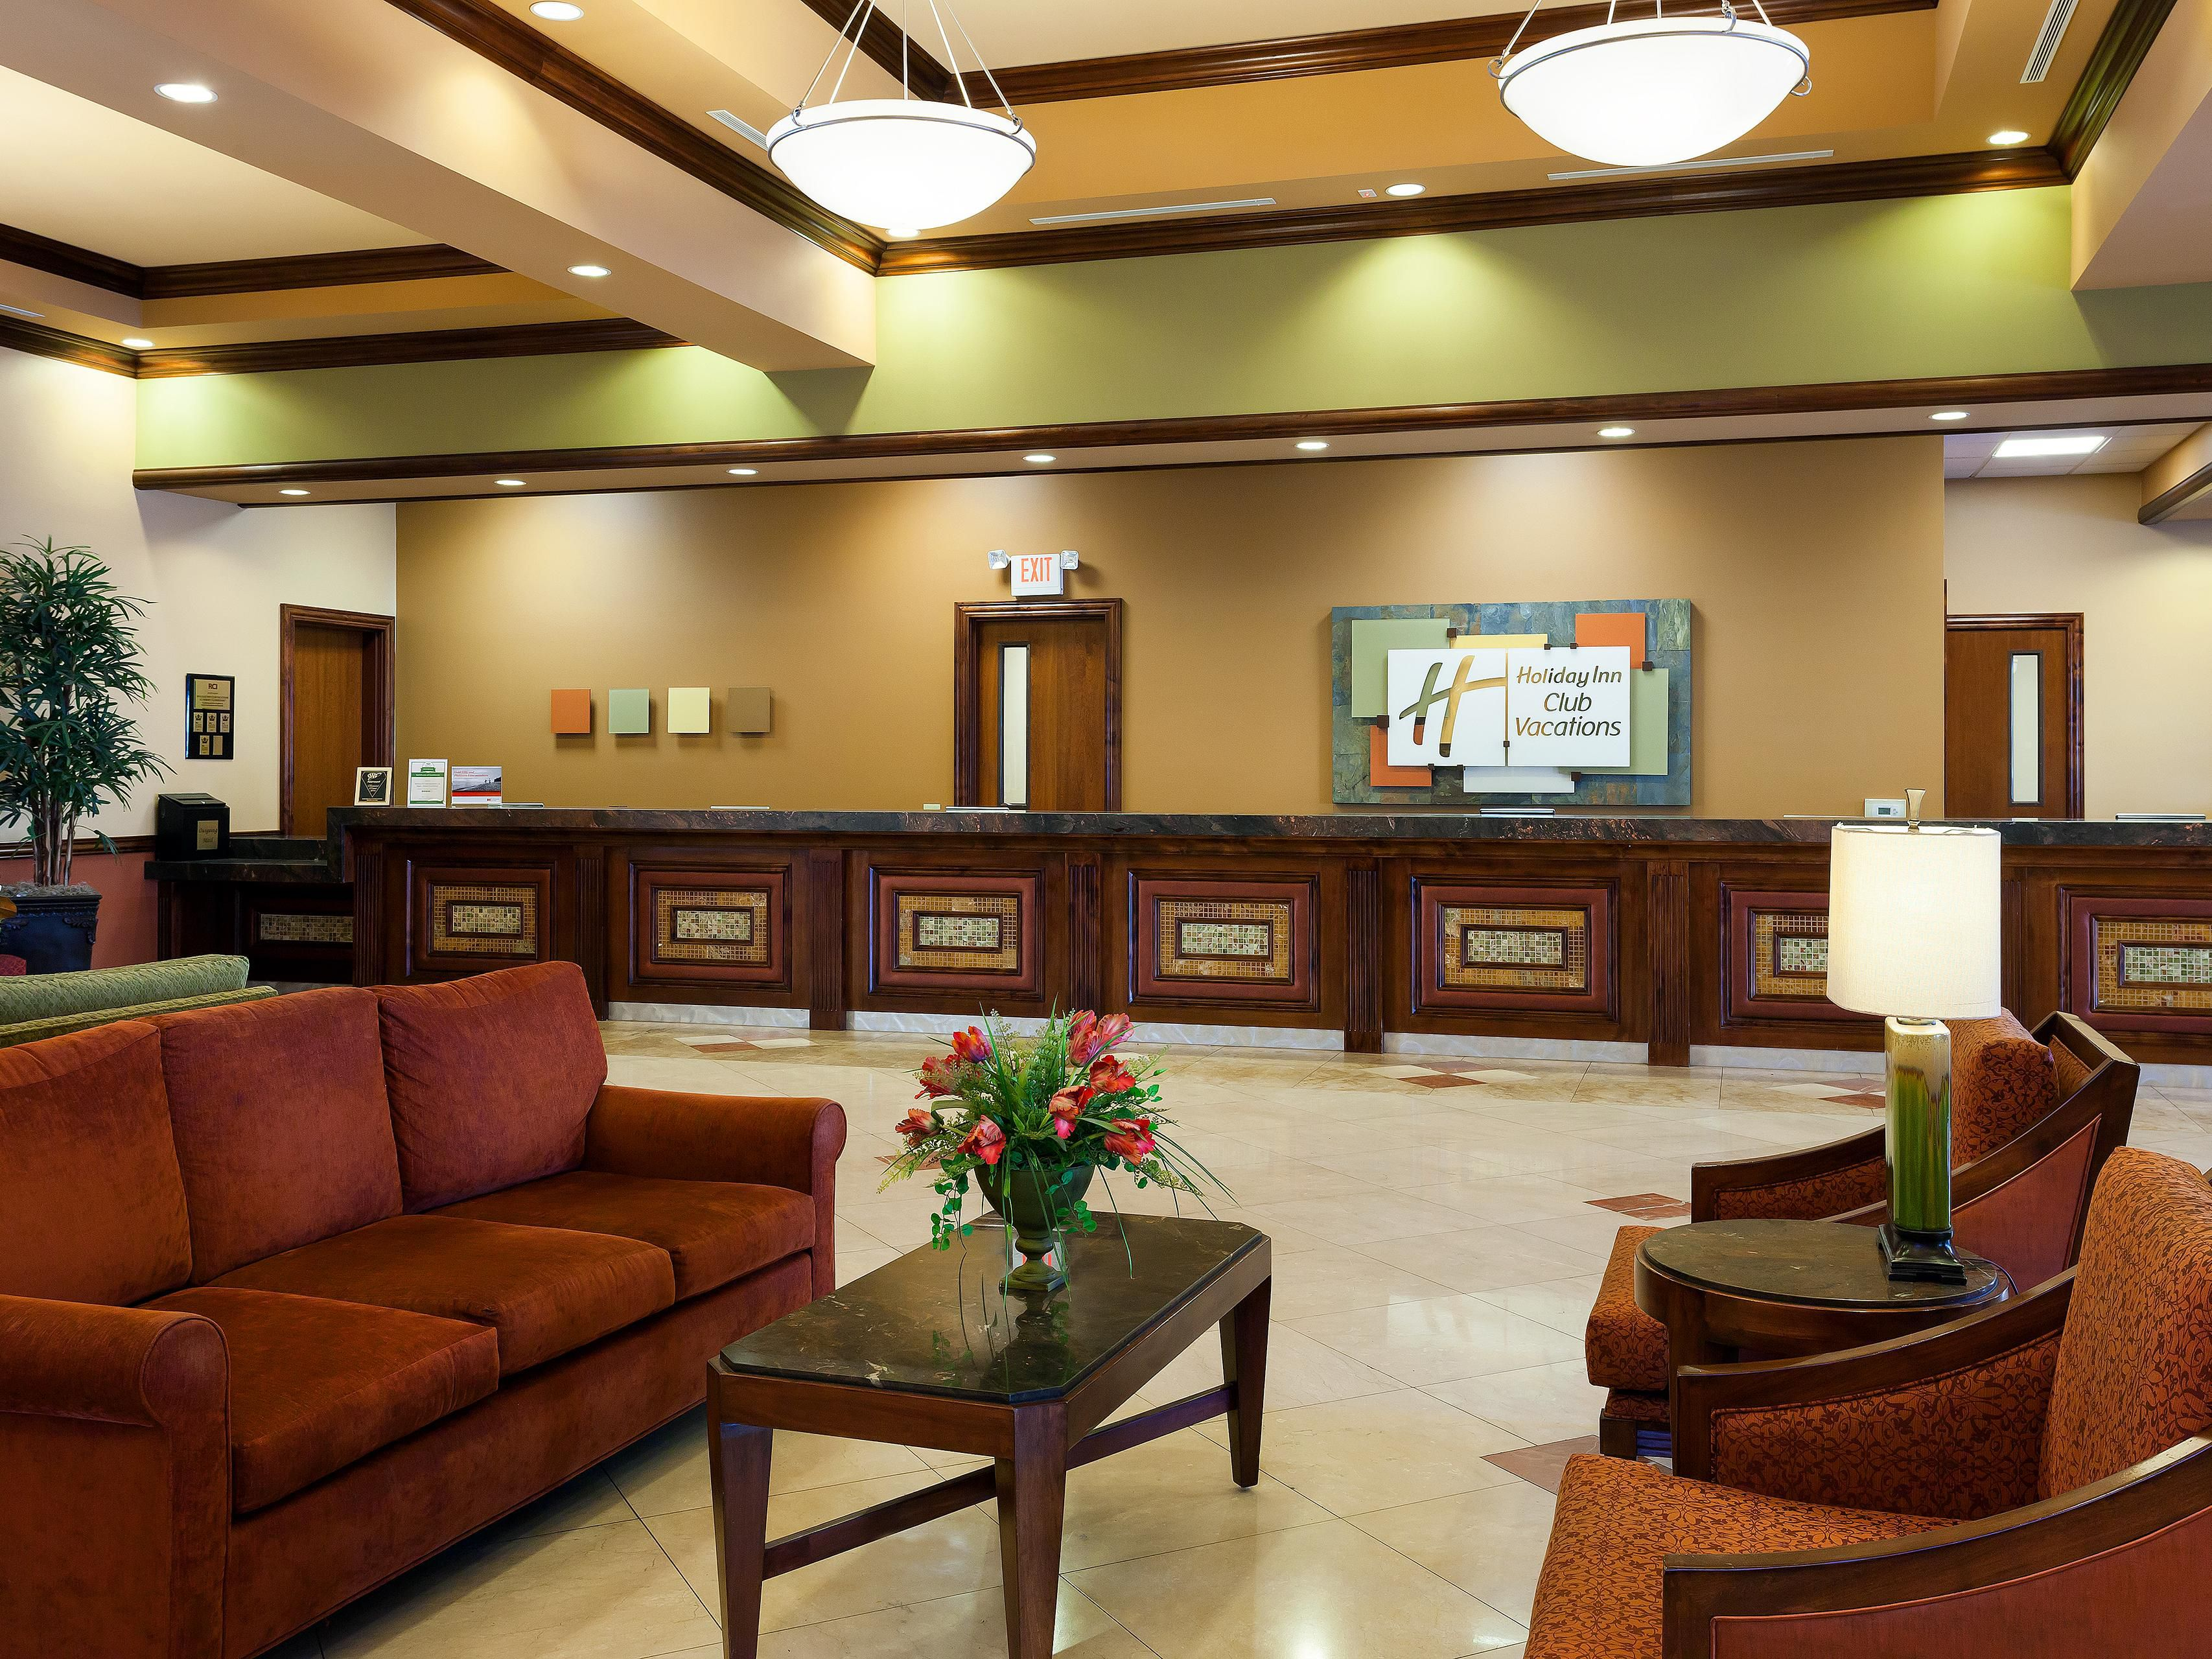 Lobby where guests check-in to the resort